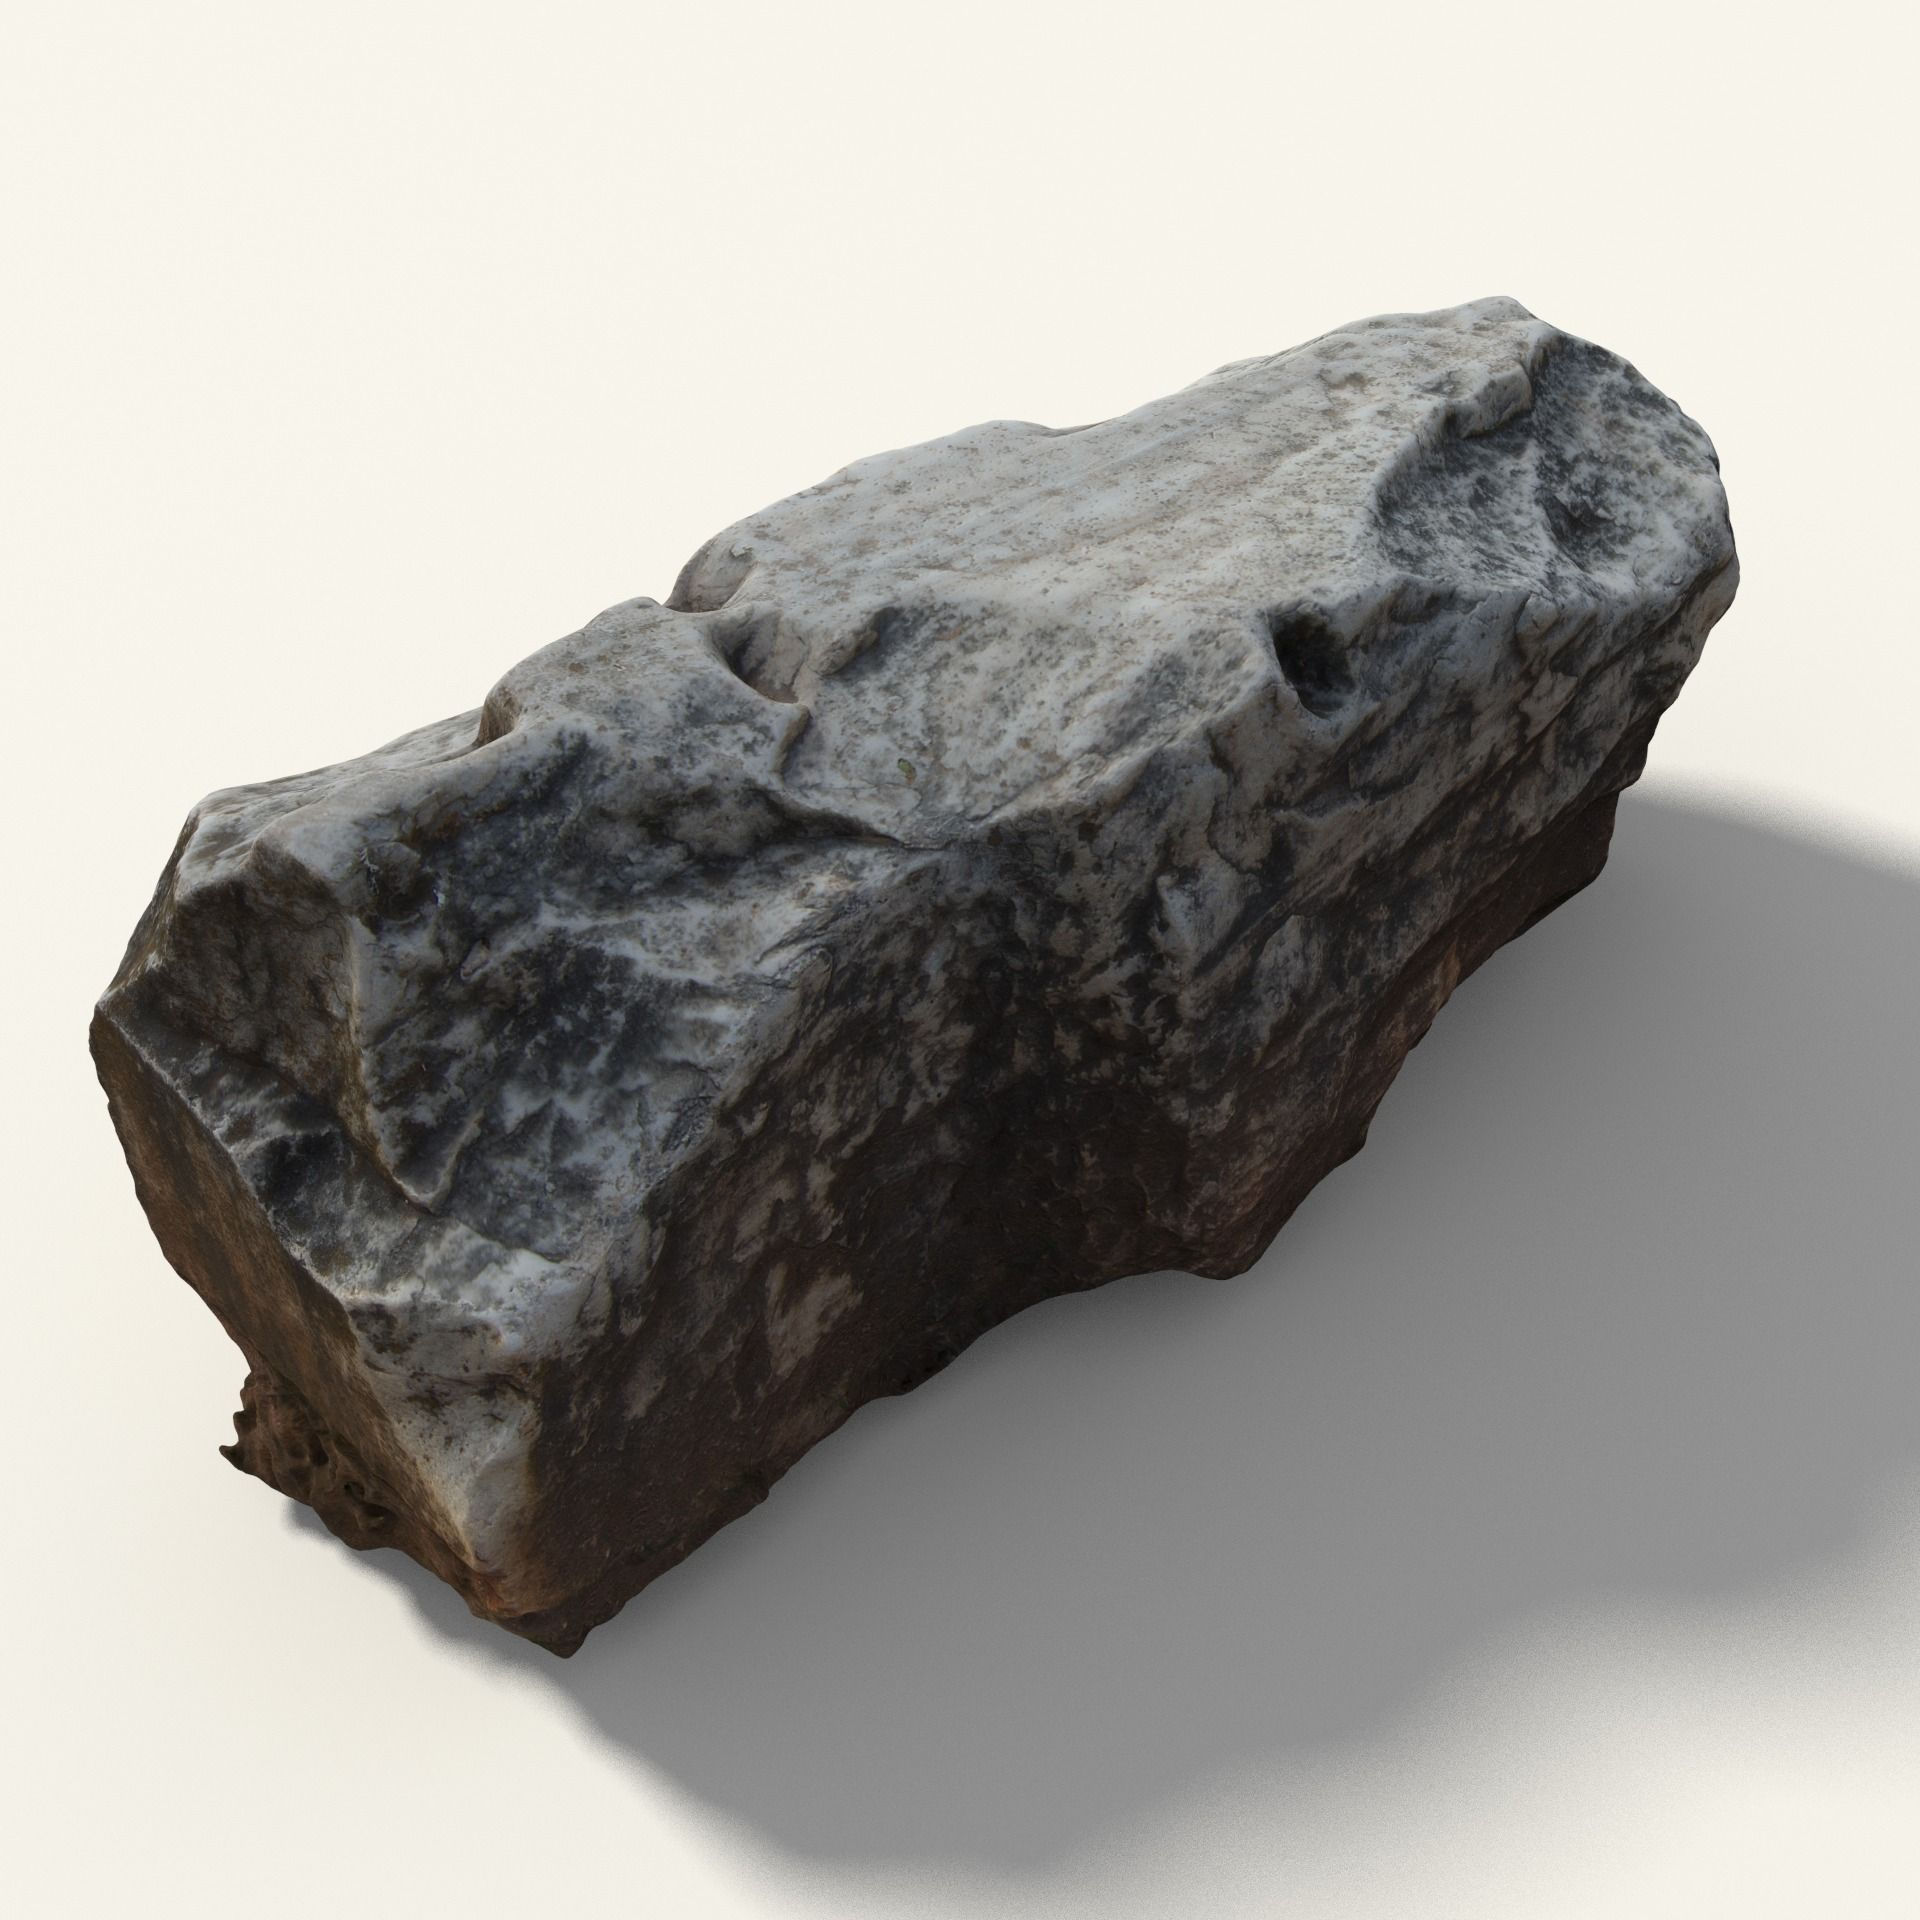 3D model Old Greek Stone With Writing | CGTrader on Granite Models  id=64415